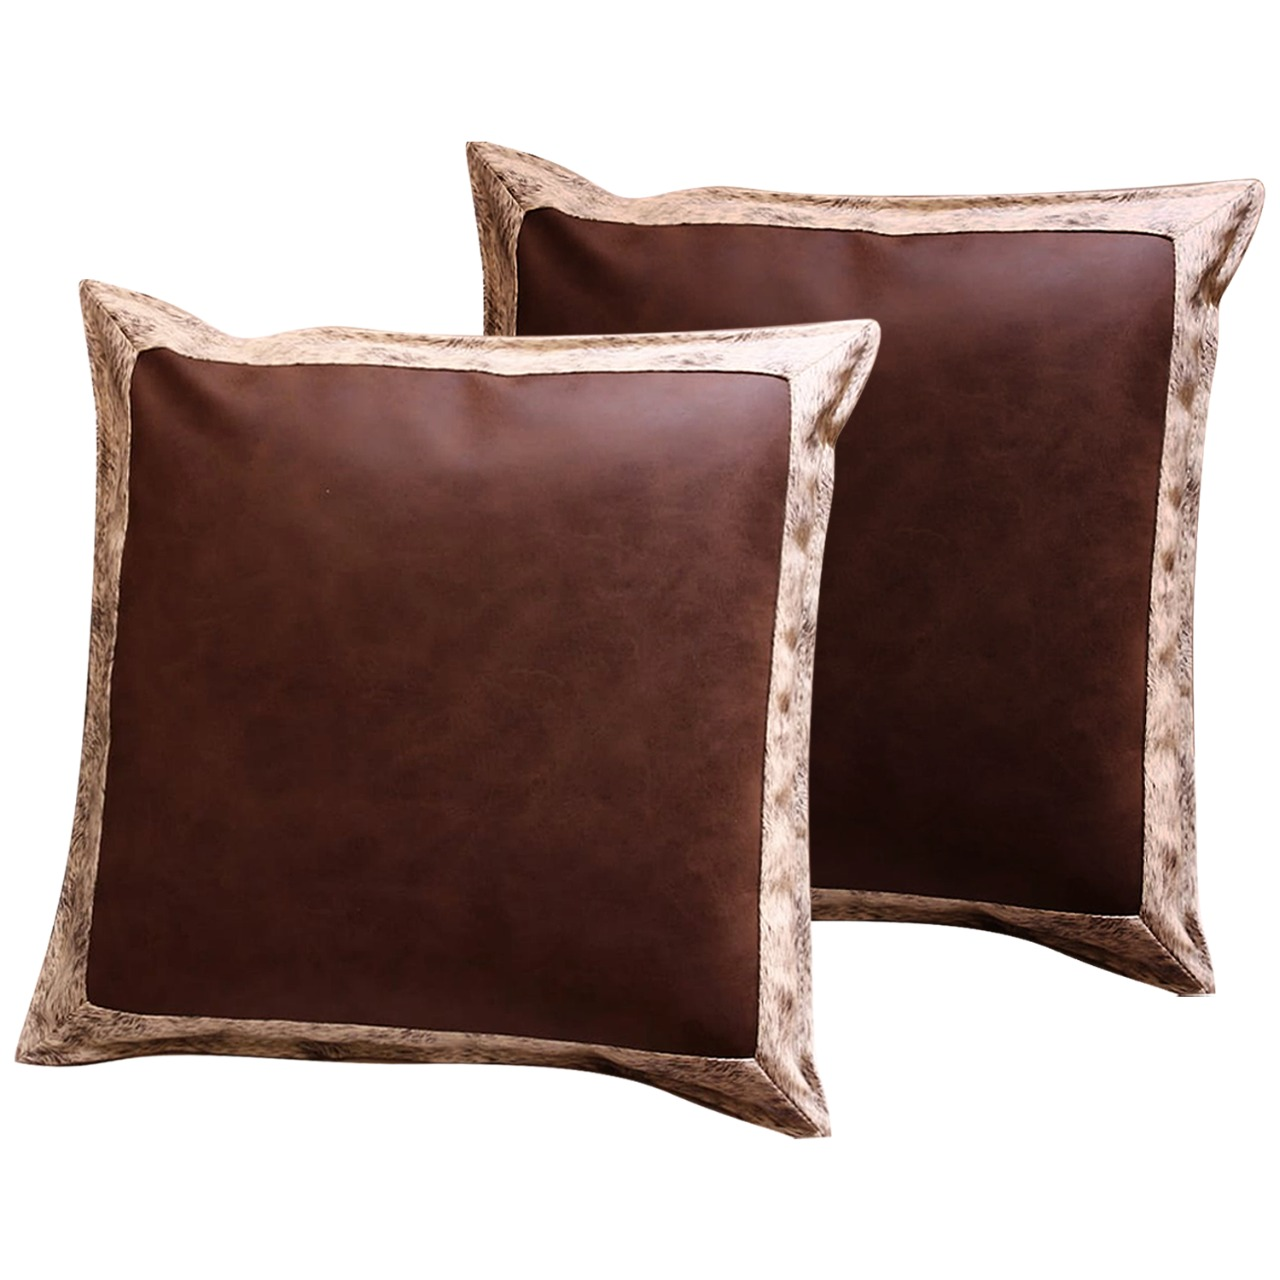 (Pack of 2) Cushion Covers |Throw Pillow Covers |Faux Leather | Home Decoration | 18 by 18 inches